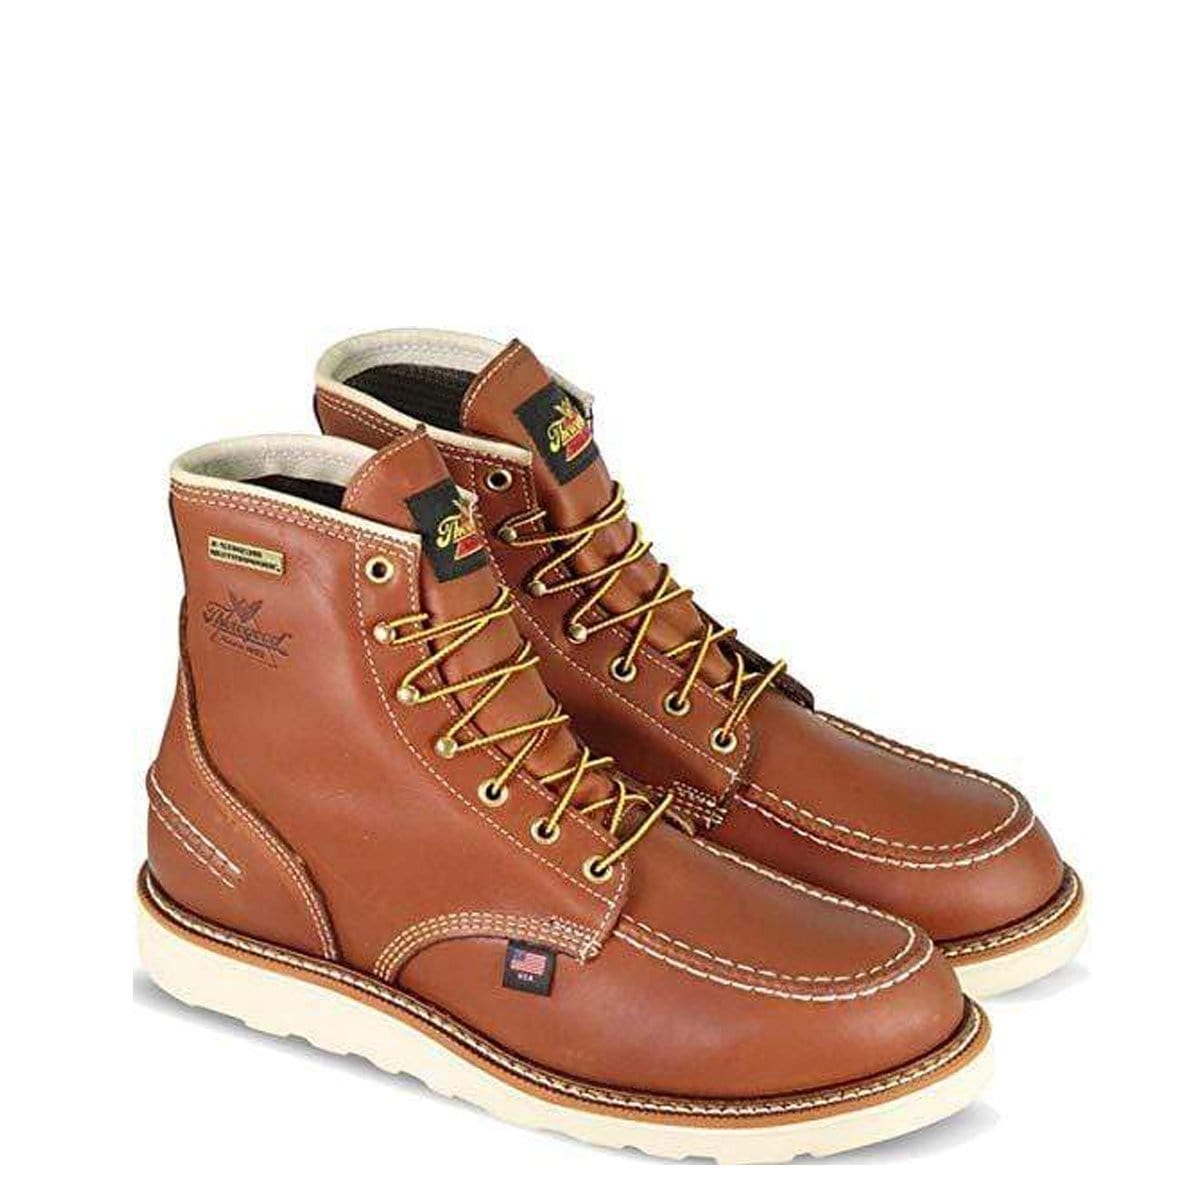 Thorogood 1957 Series 6in Moc Toe MAXwear Wedge Waterproof Non-Safety Toe Boot 814-4600